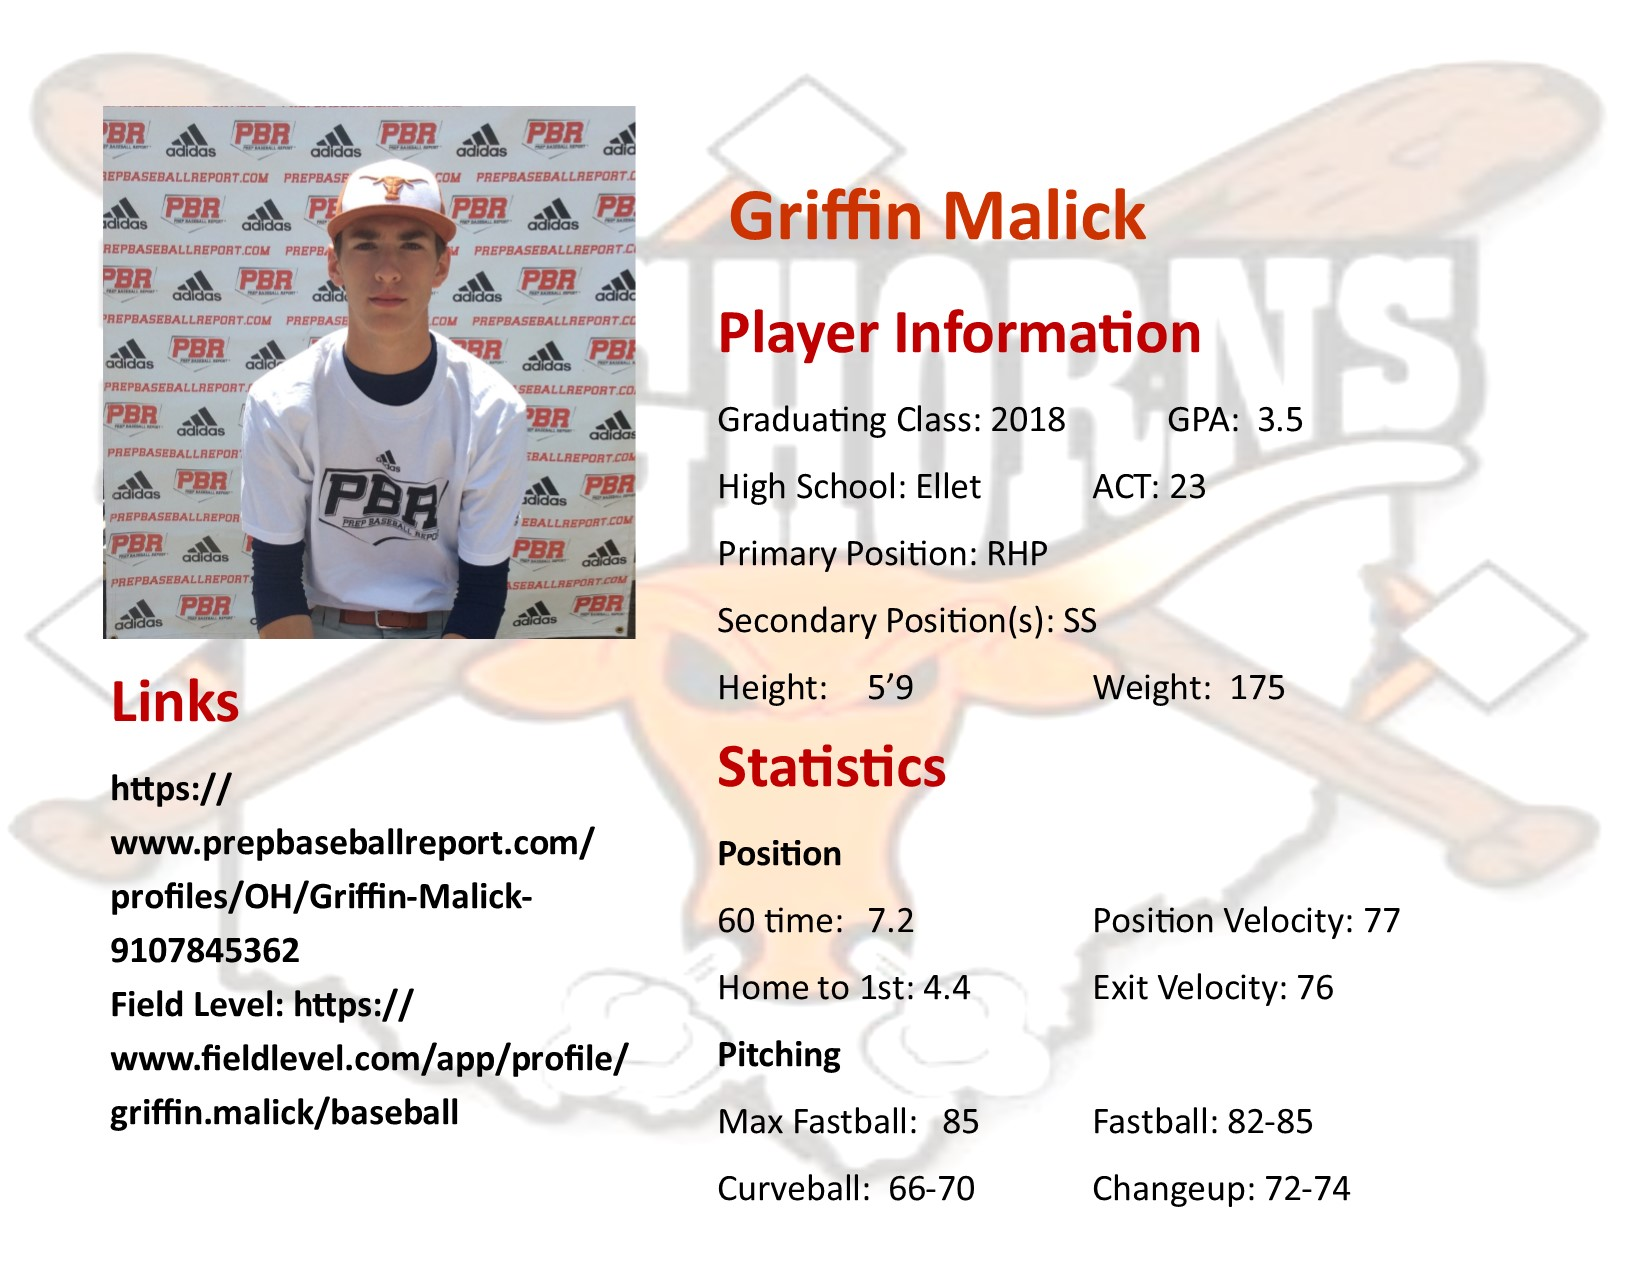 Griffin Malick